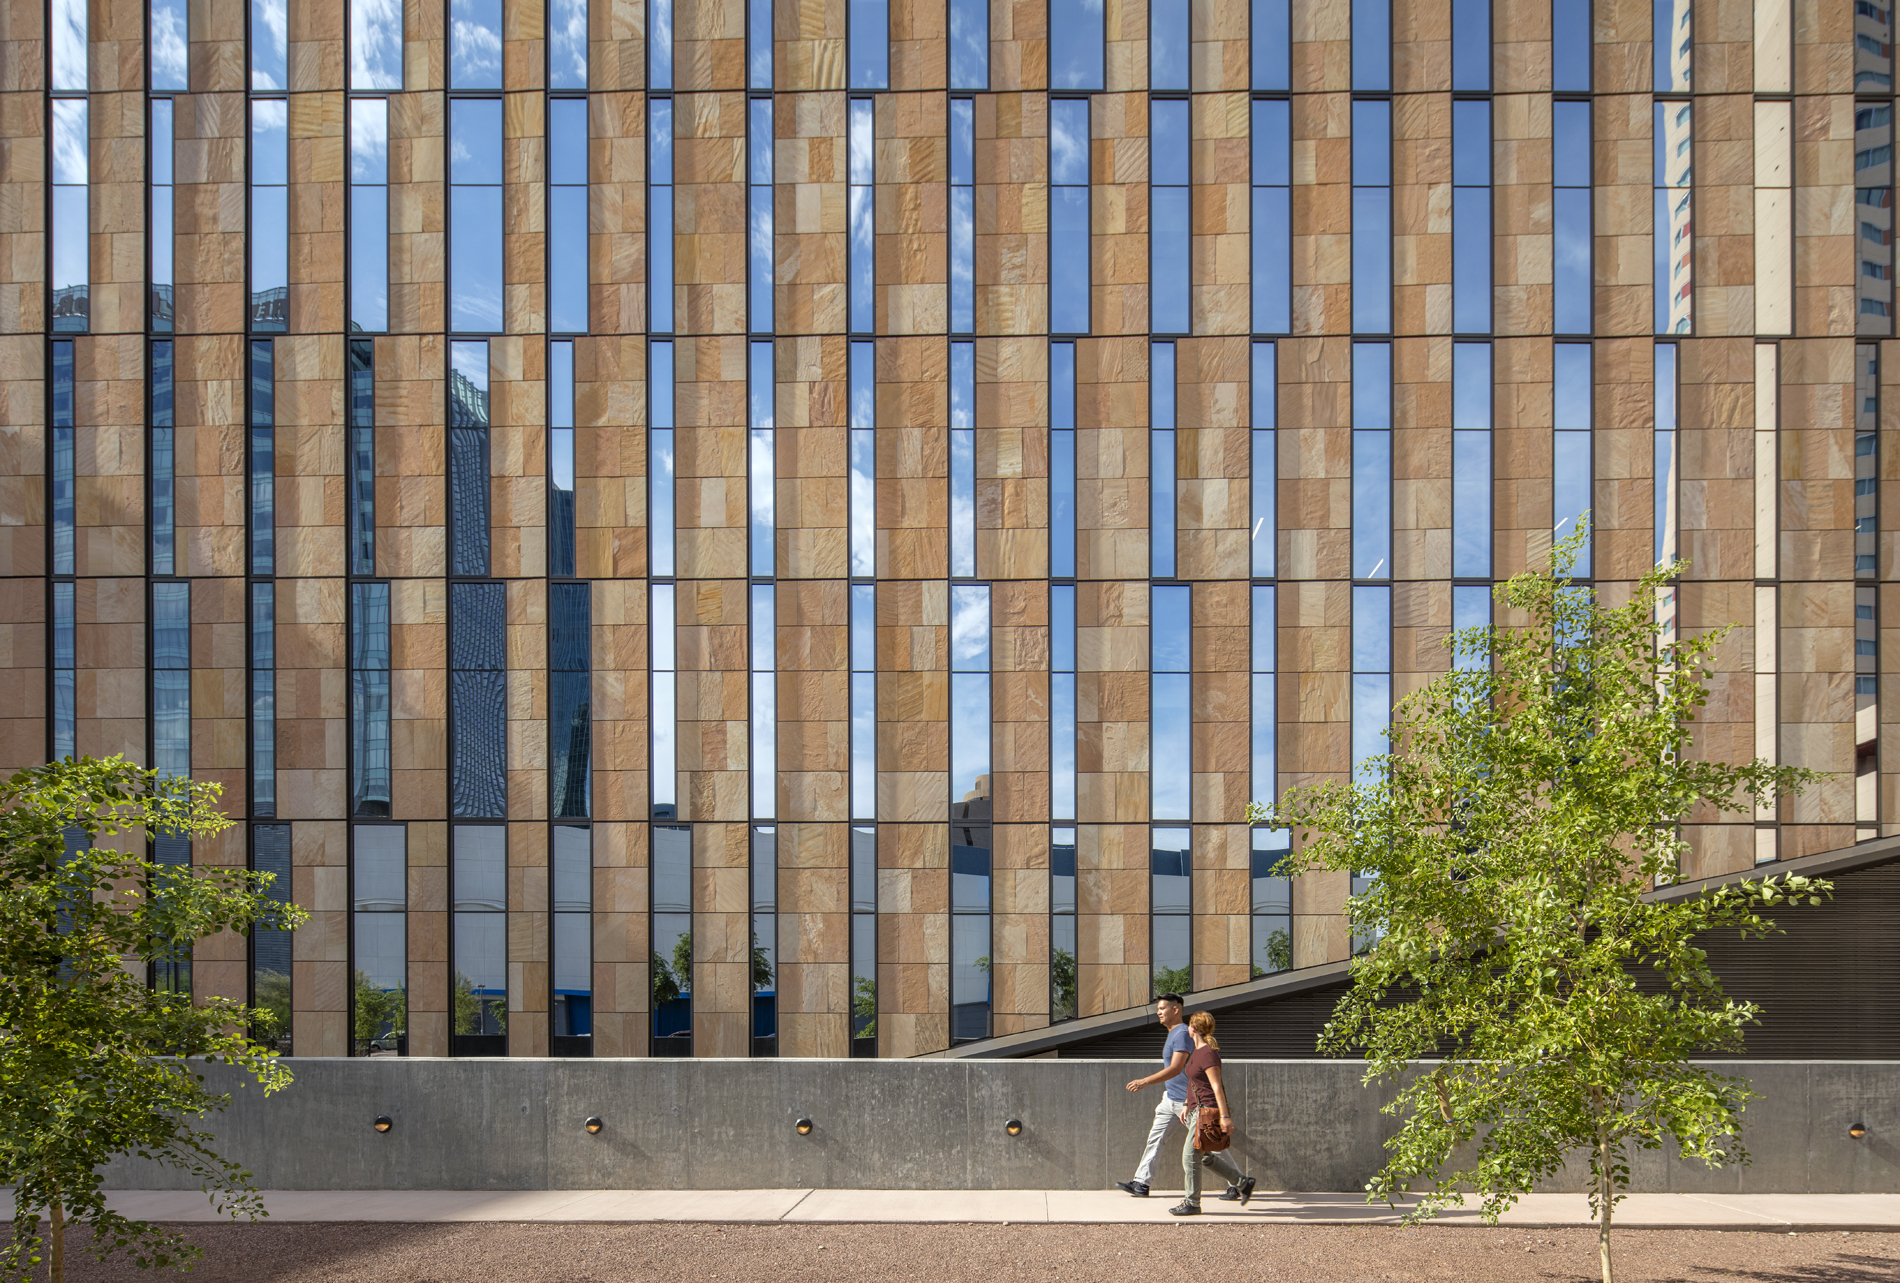 Facade: How A Radically Open New Law School Campus Hopes To Engage